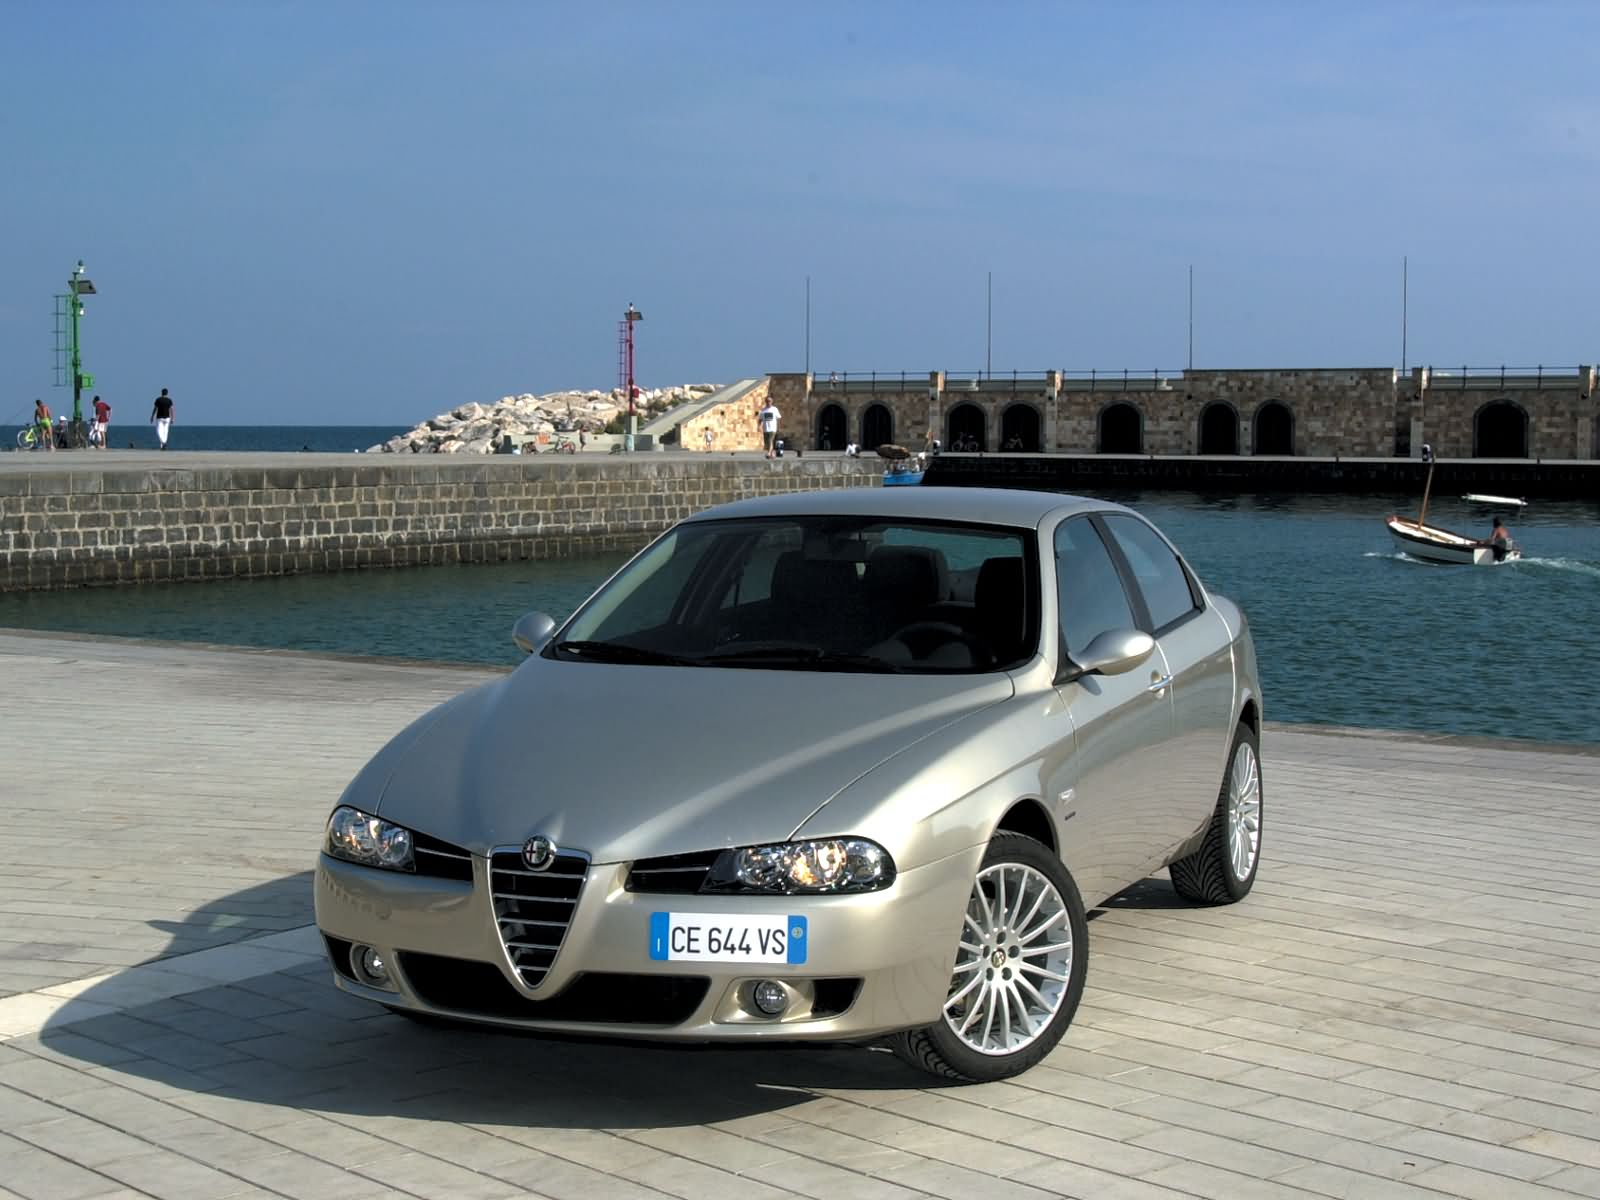 Alfa-Romeo 156 photo 14